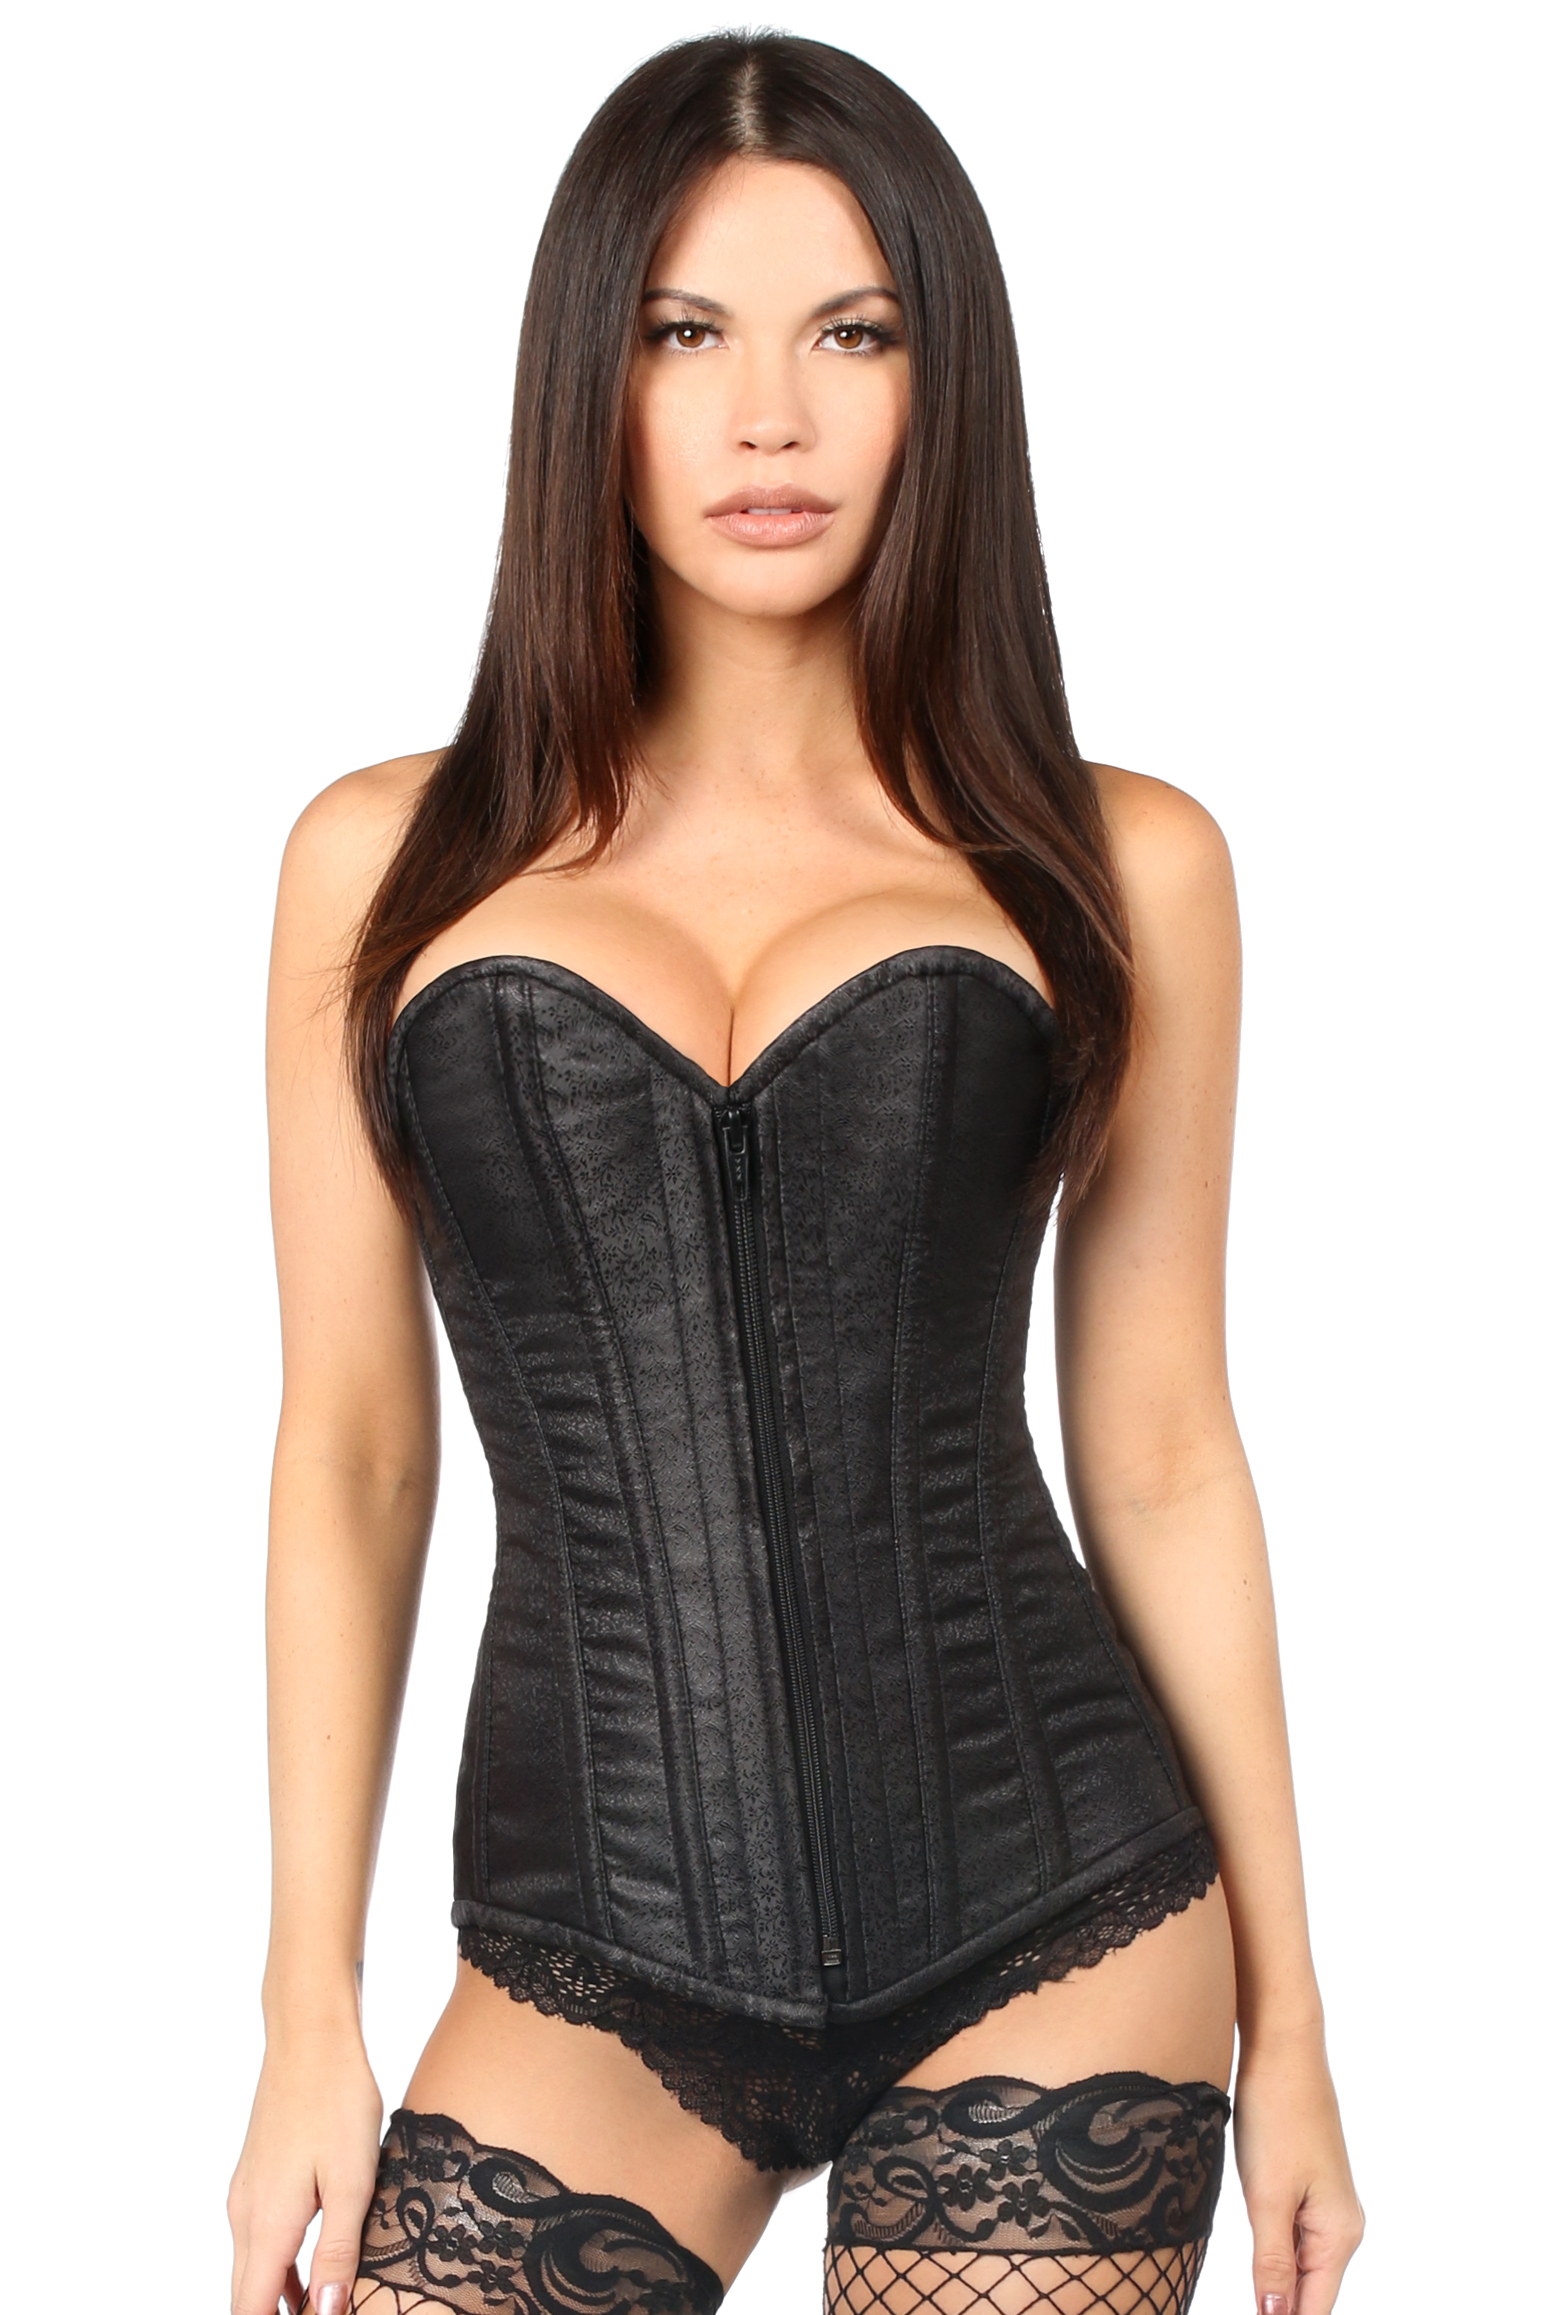 Top Drawer Black Brocade Steel Boned Corset DASTD-694